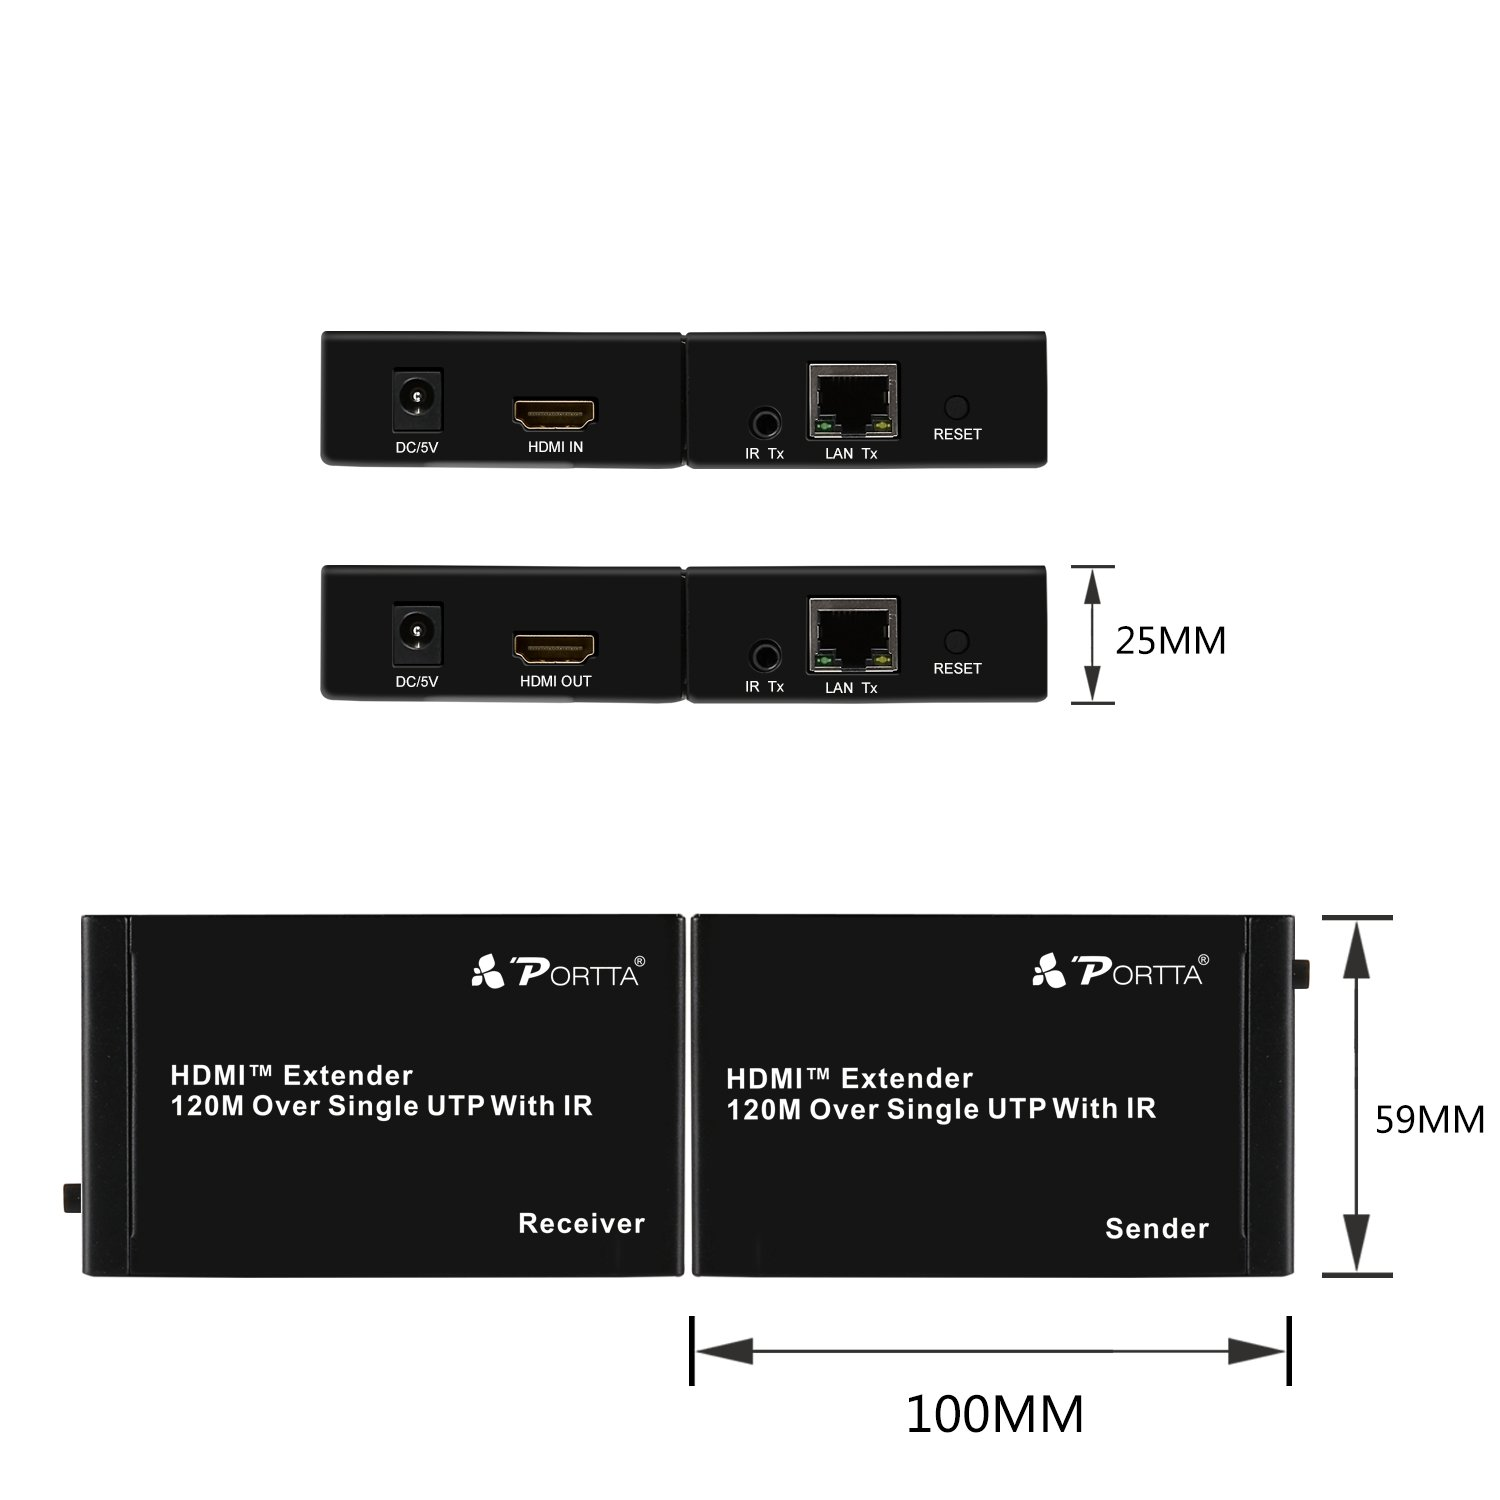 Portta Hdmi Extender By Cat5e Cat6 Cable 60m Home Audio Over Wiring Diagram Theater